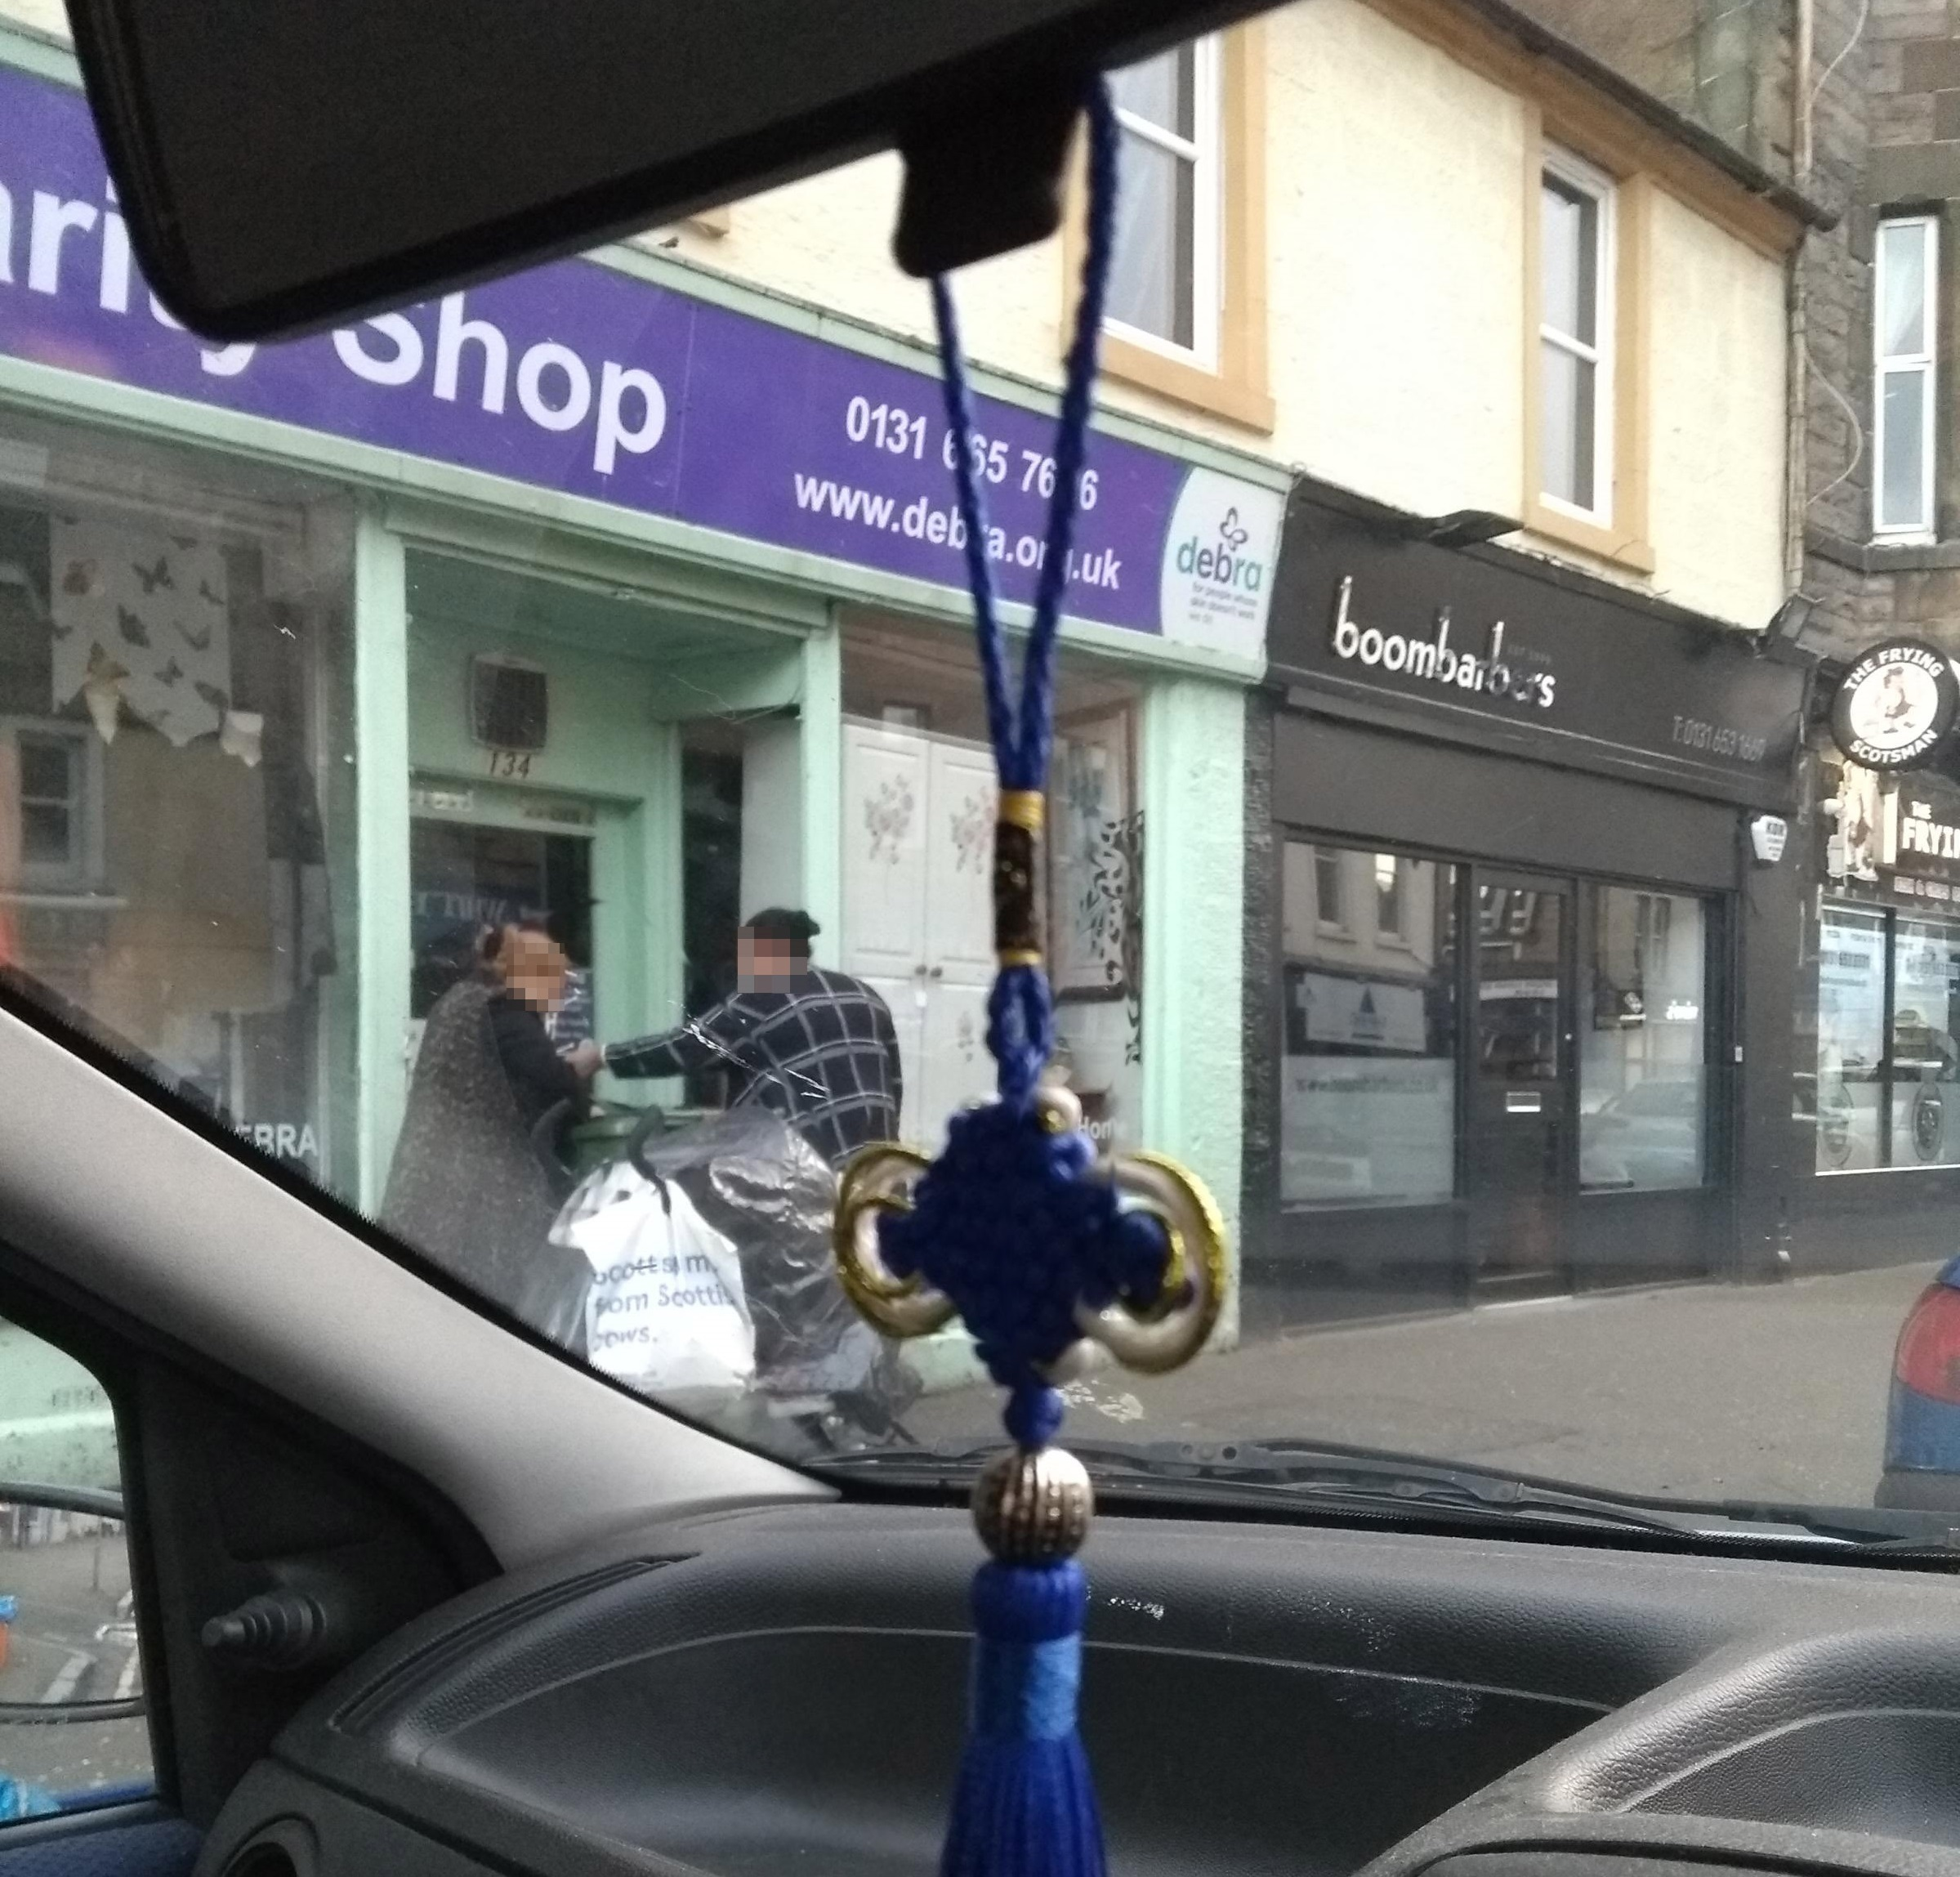 A concerned member of the public sent in a photo showing the women allegedly taking items from outside a charity shop in Musselburgh